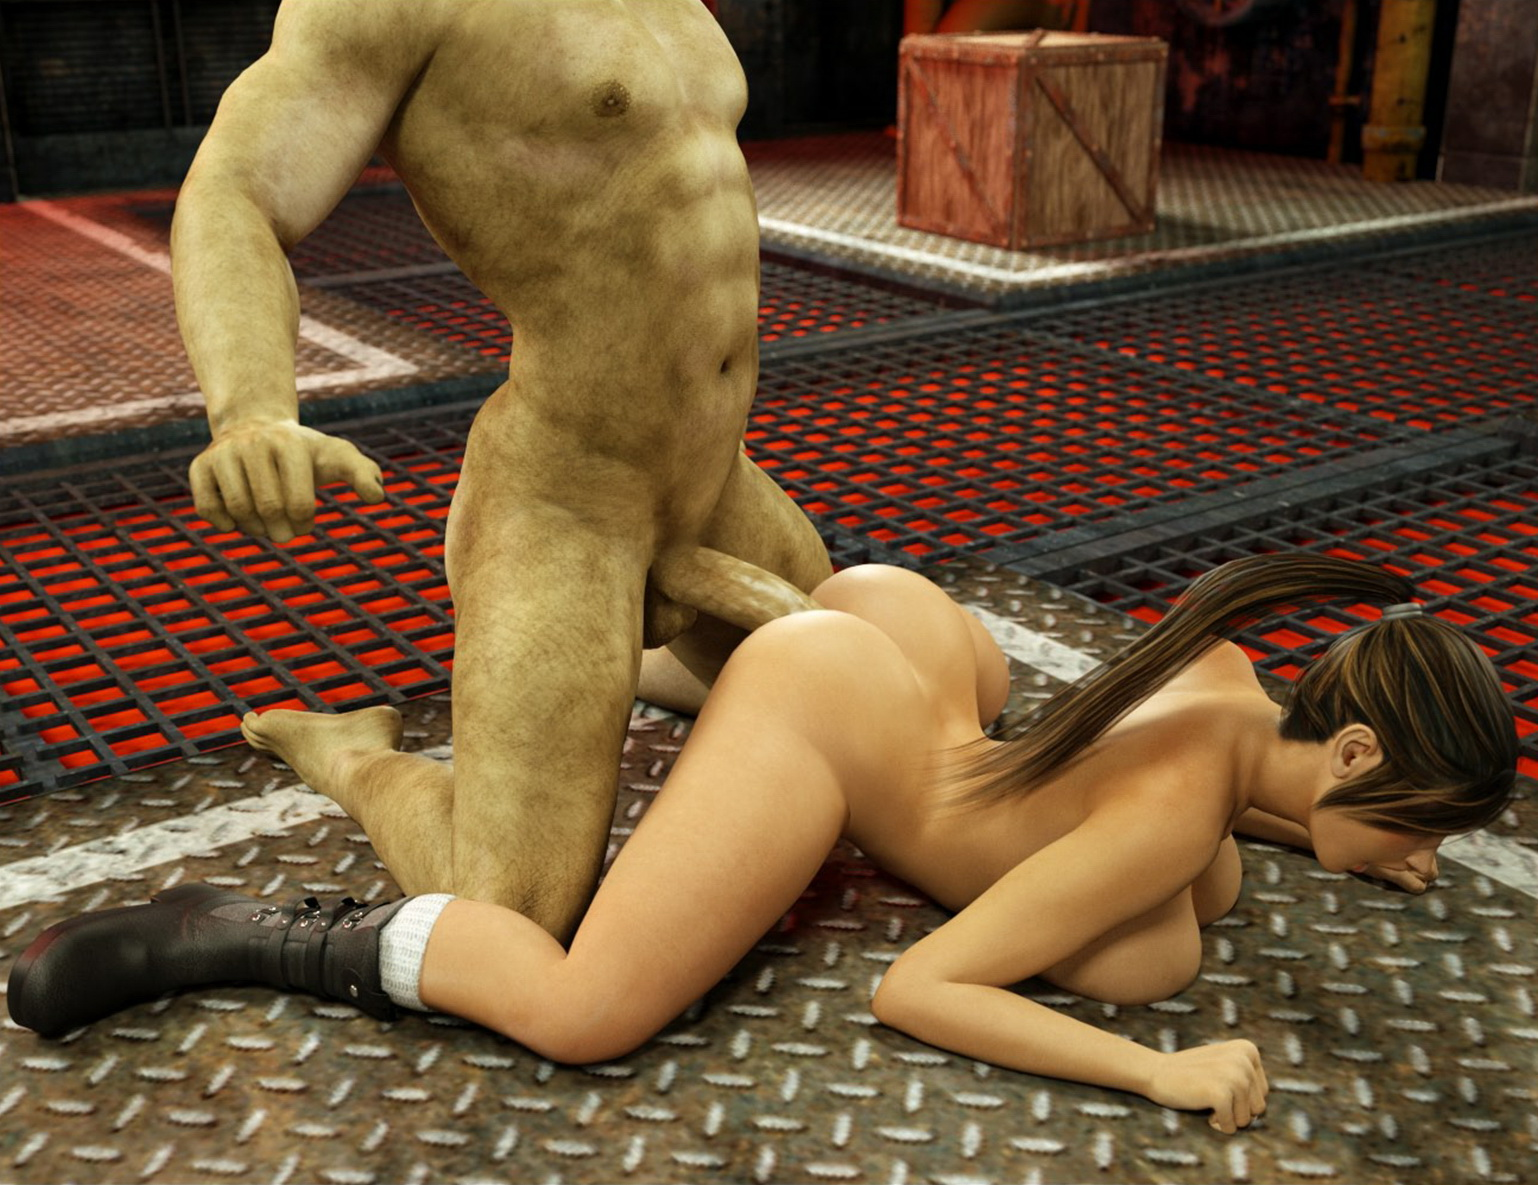 Resident evil 5 sheva has dildos mod nude movie